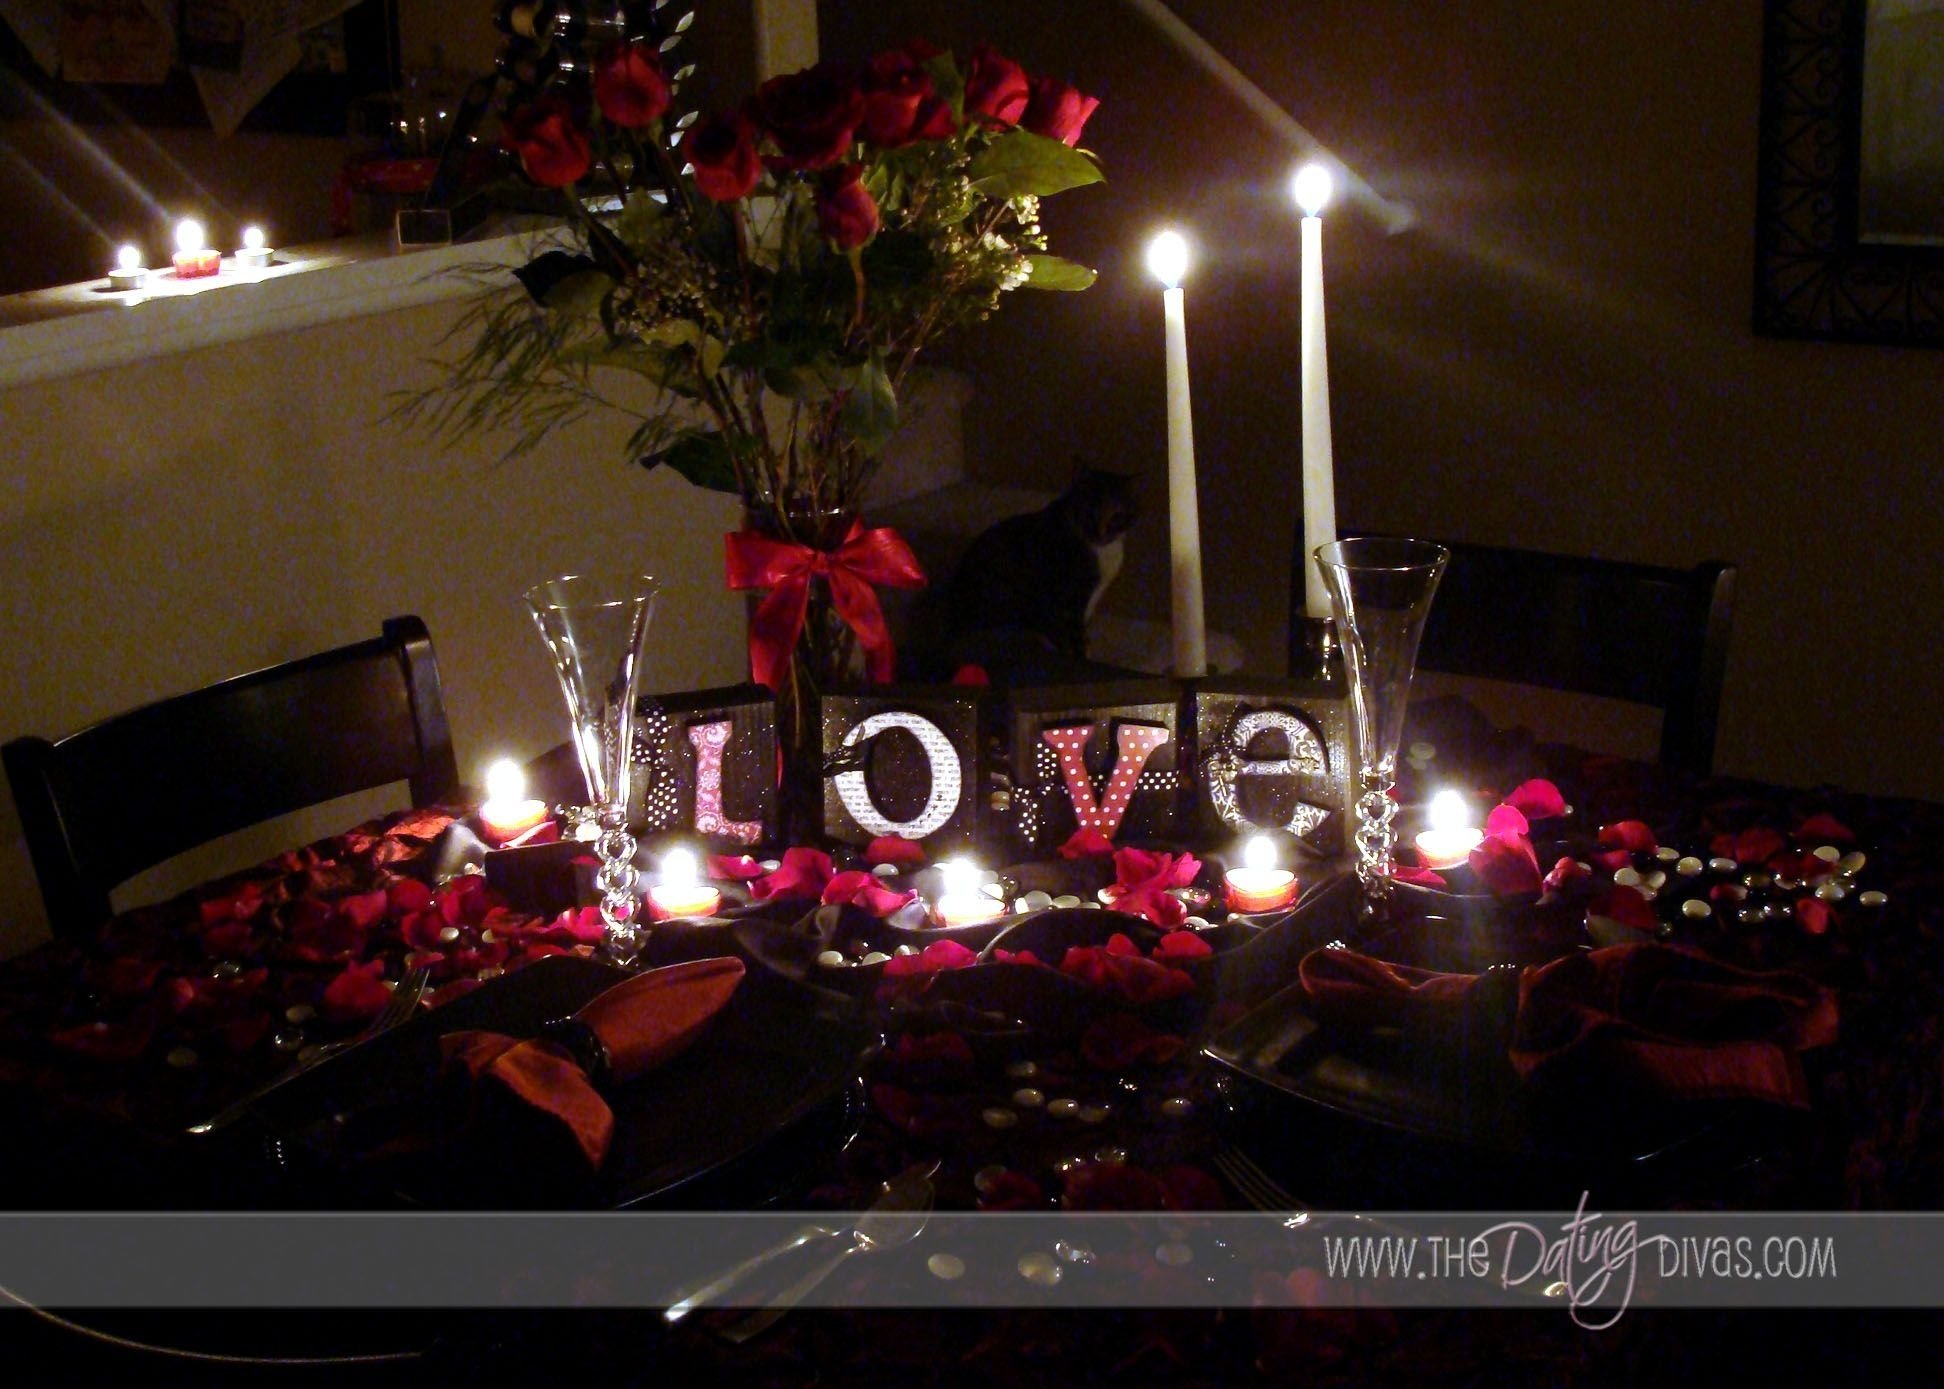 10 Stylish Ideas For A Romantic Night romantic anniversary dinner ideas from romantic dinner tables